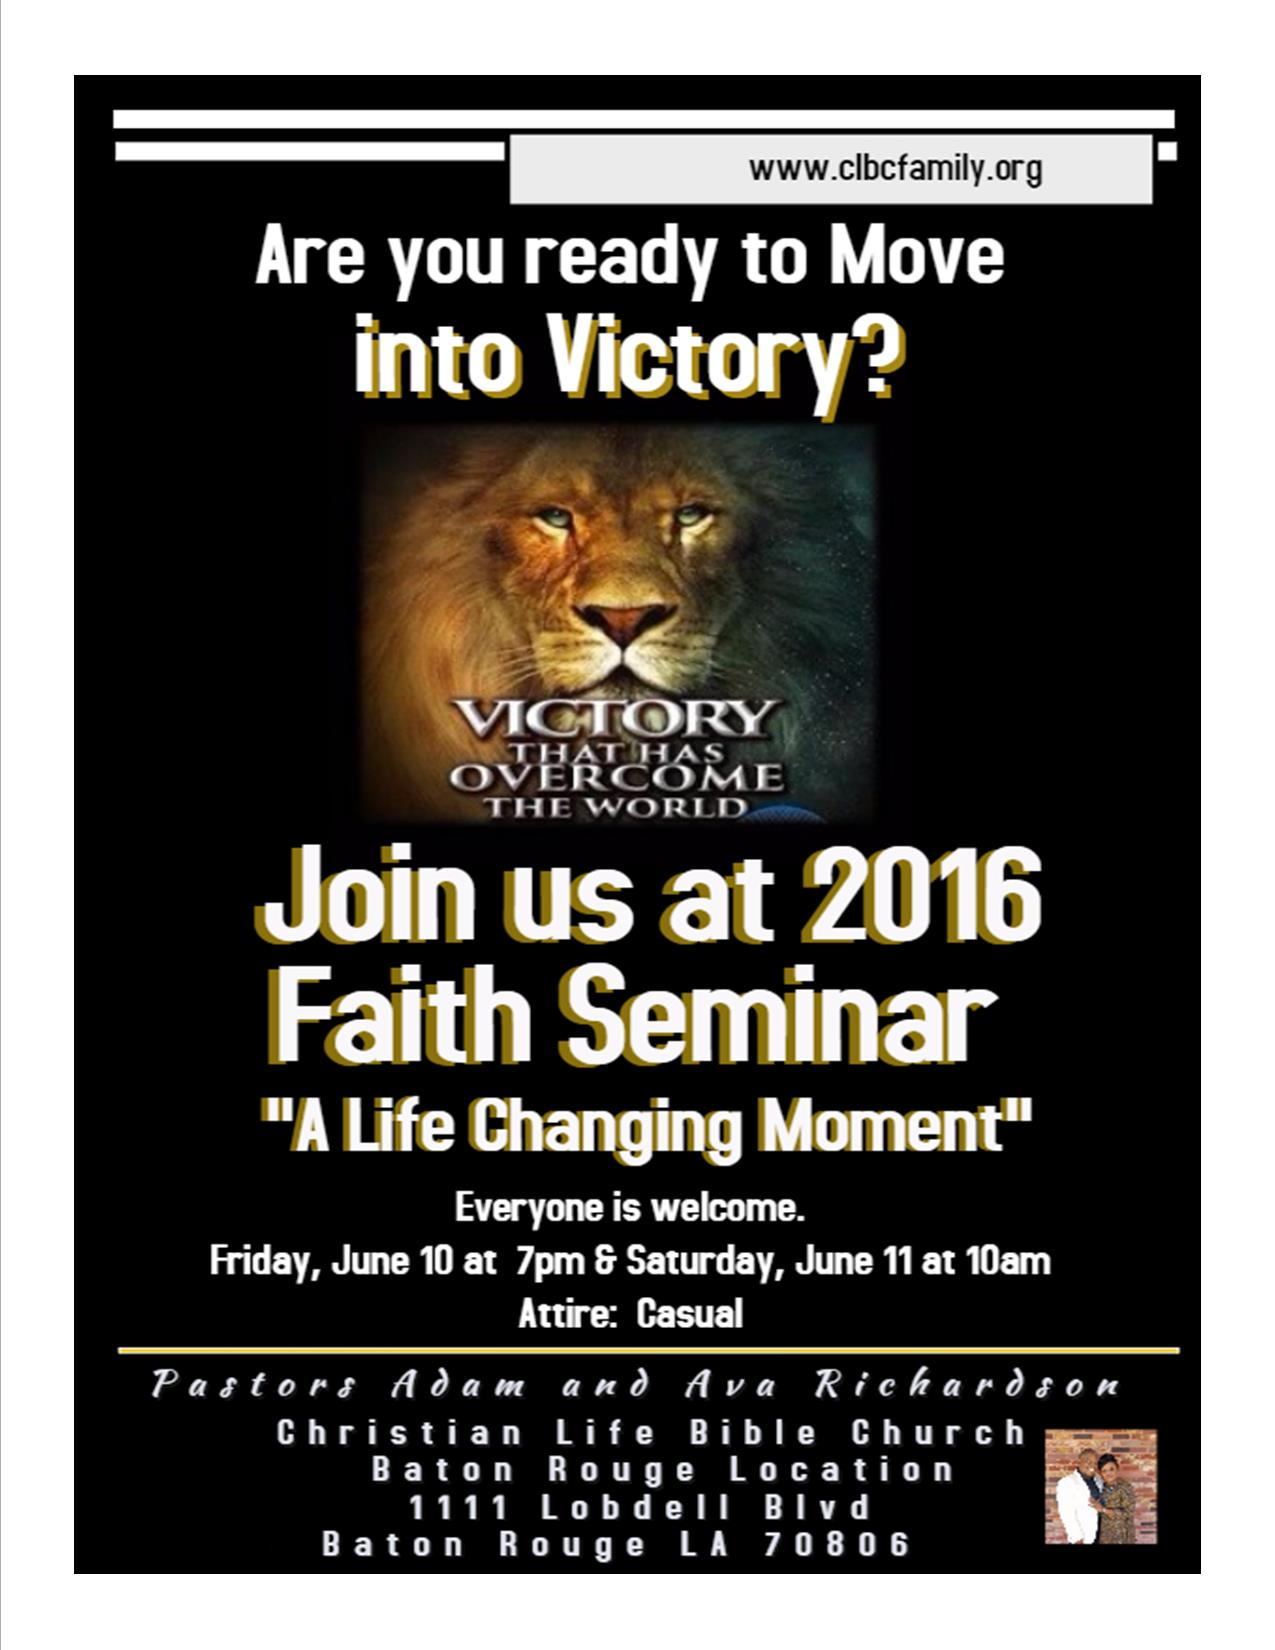 2016 Faith Seminar Invitation